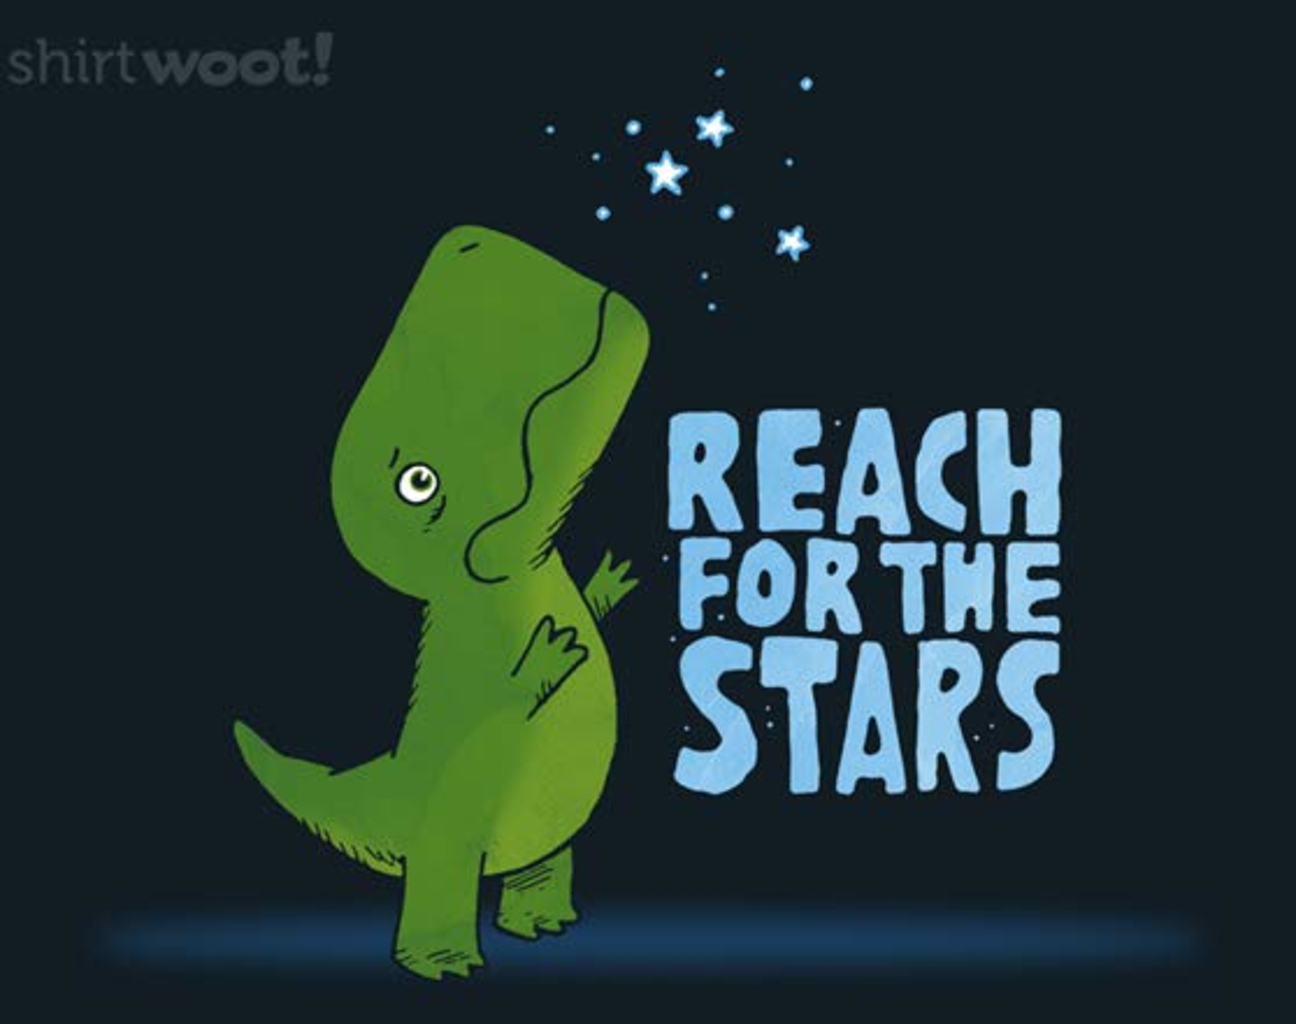 Woot!: Reach for the Stars